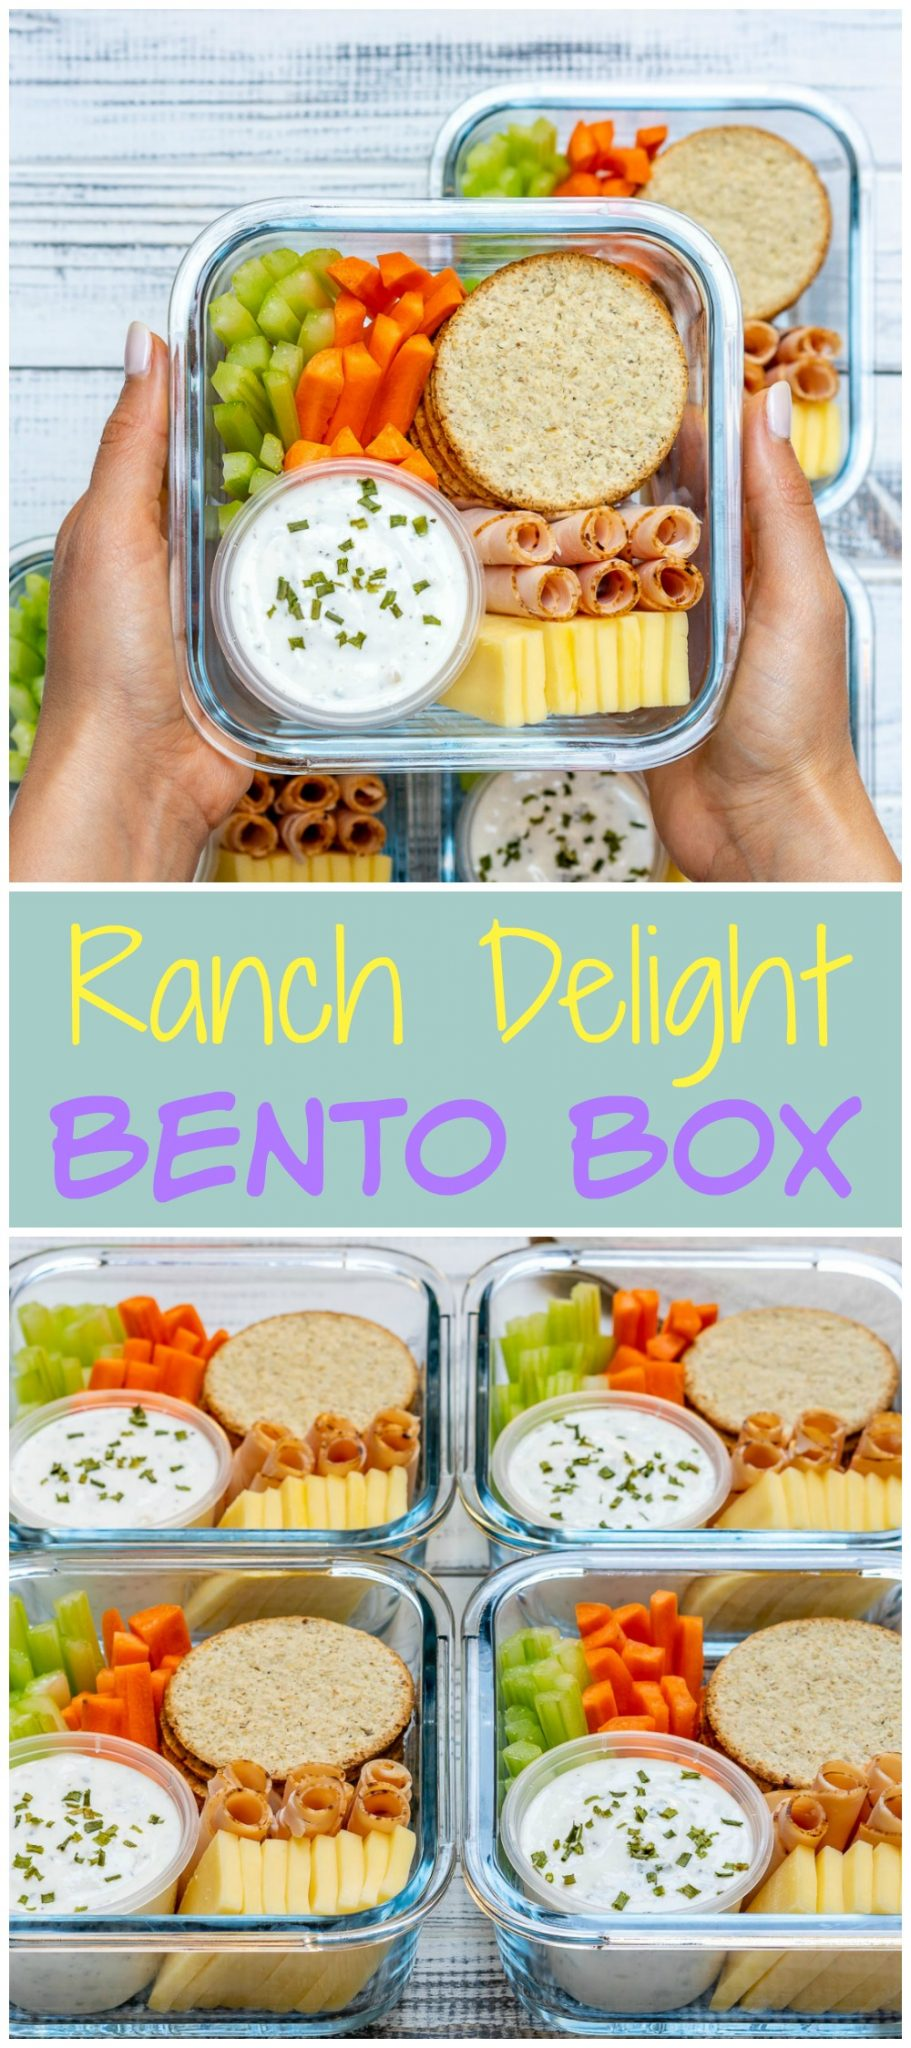 Easy Healthy Recipe Bento Box